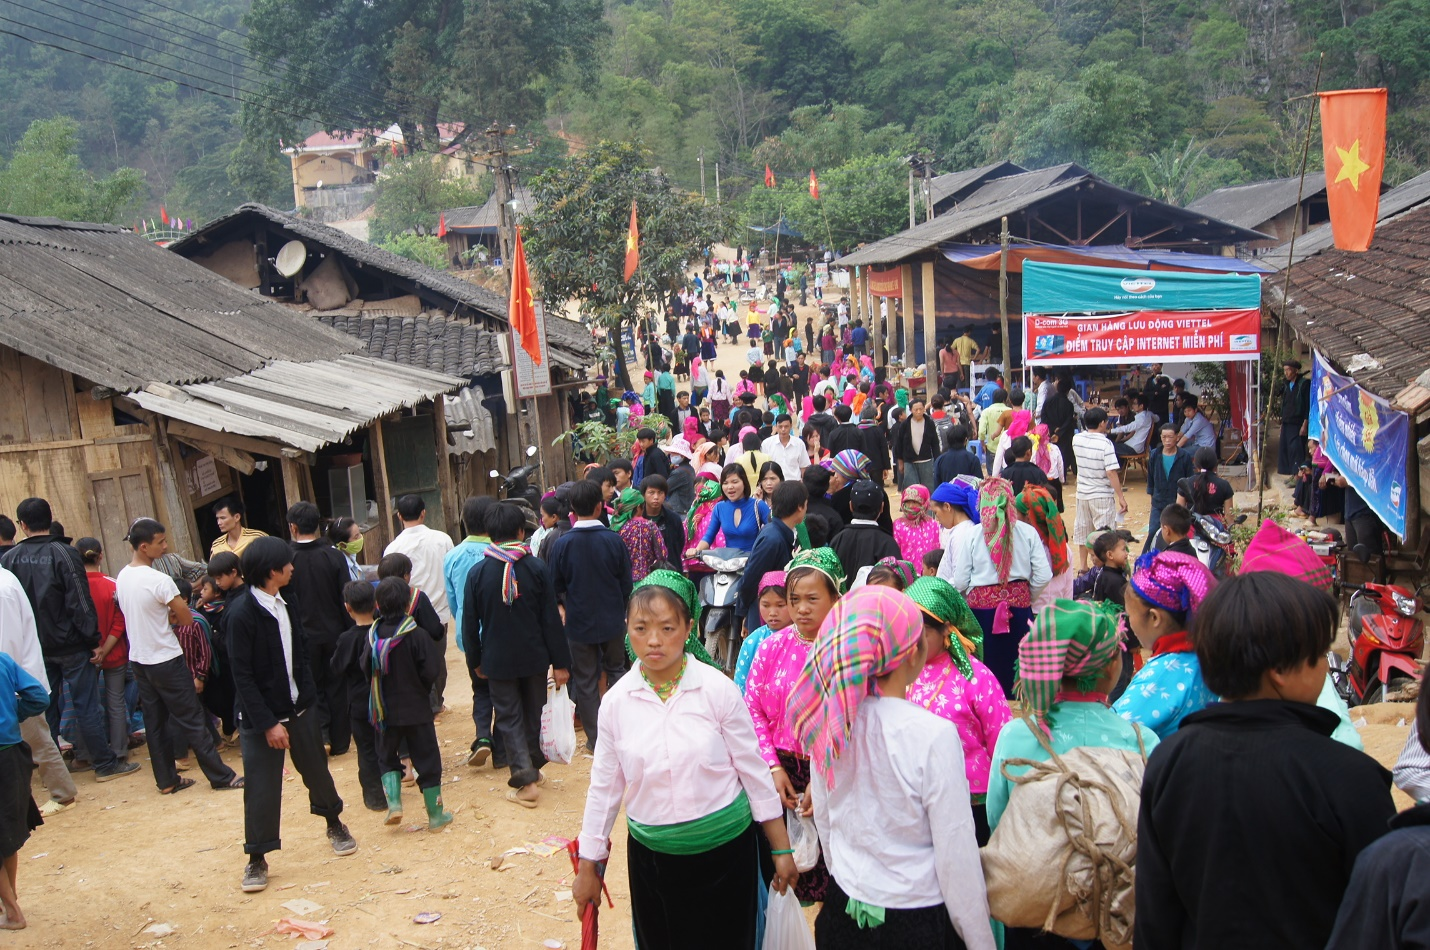 The ethnic market is one of symbols of the traditional culture of Dong Van plateau